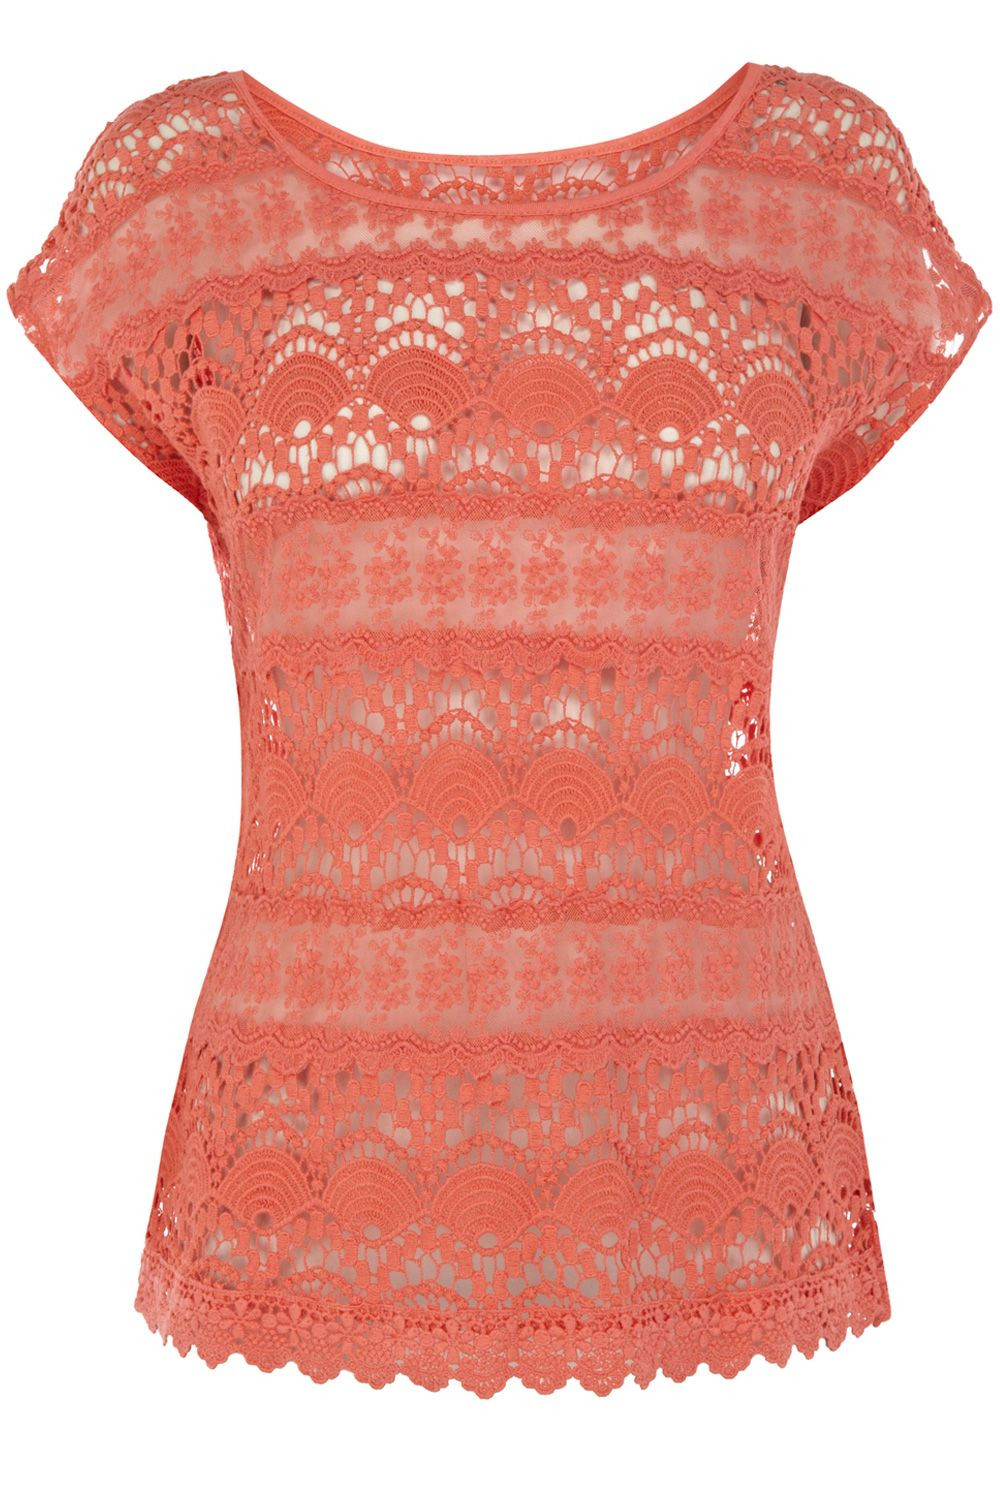 Inspirational Oasis Crochet Lace T Shirt In Pink Coral Crochet Shirts Of Brilliant 43 Ideas Crochet Shirts